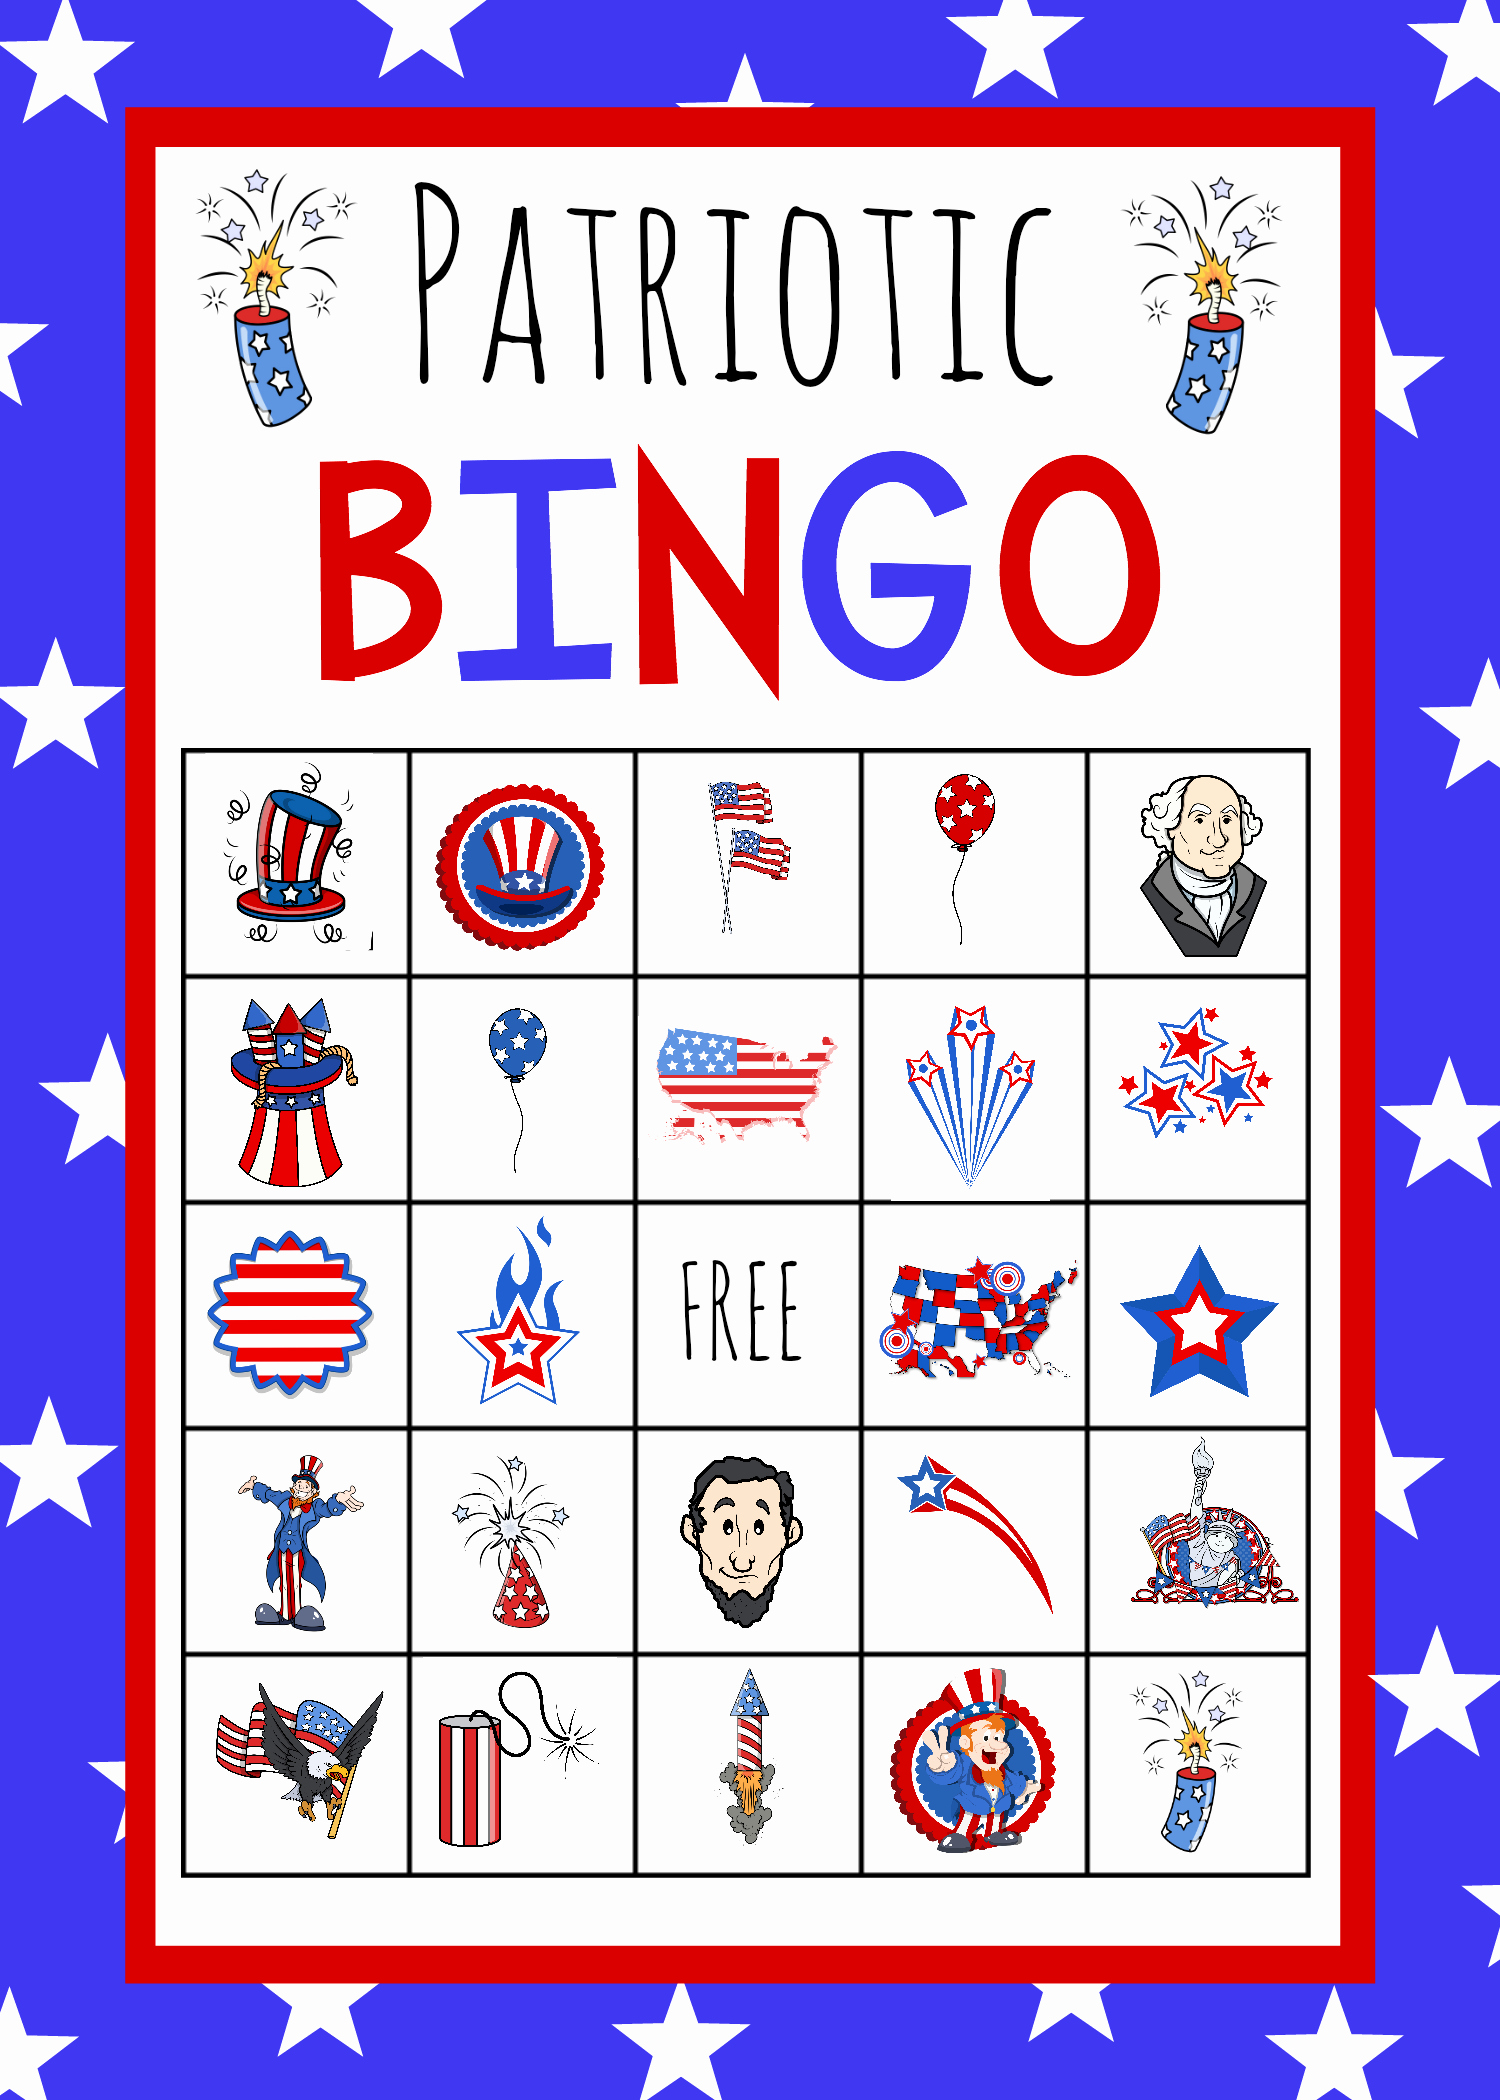 4th Of July Cards Printable Unique Patriotic 4th Of July Bingo Game to Print